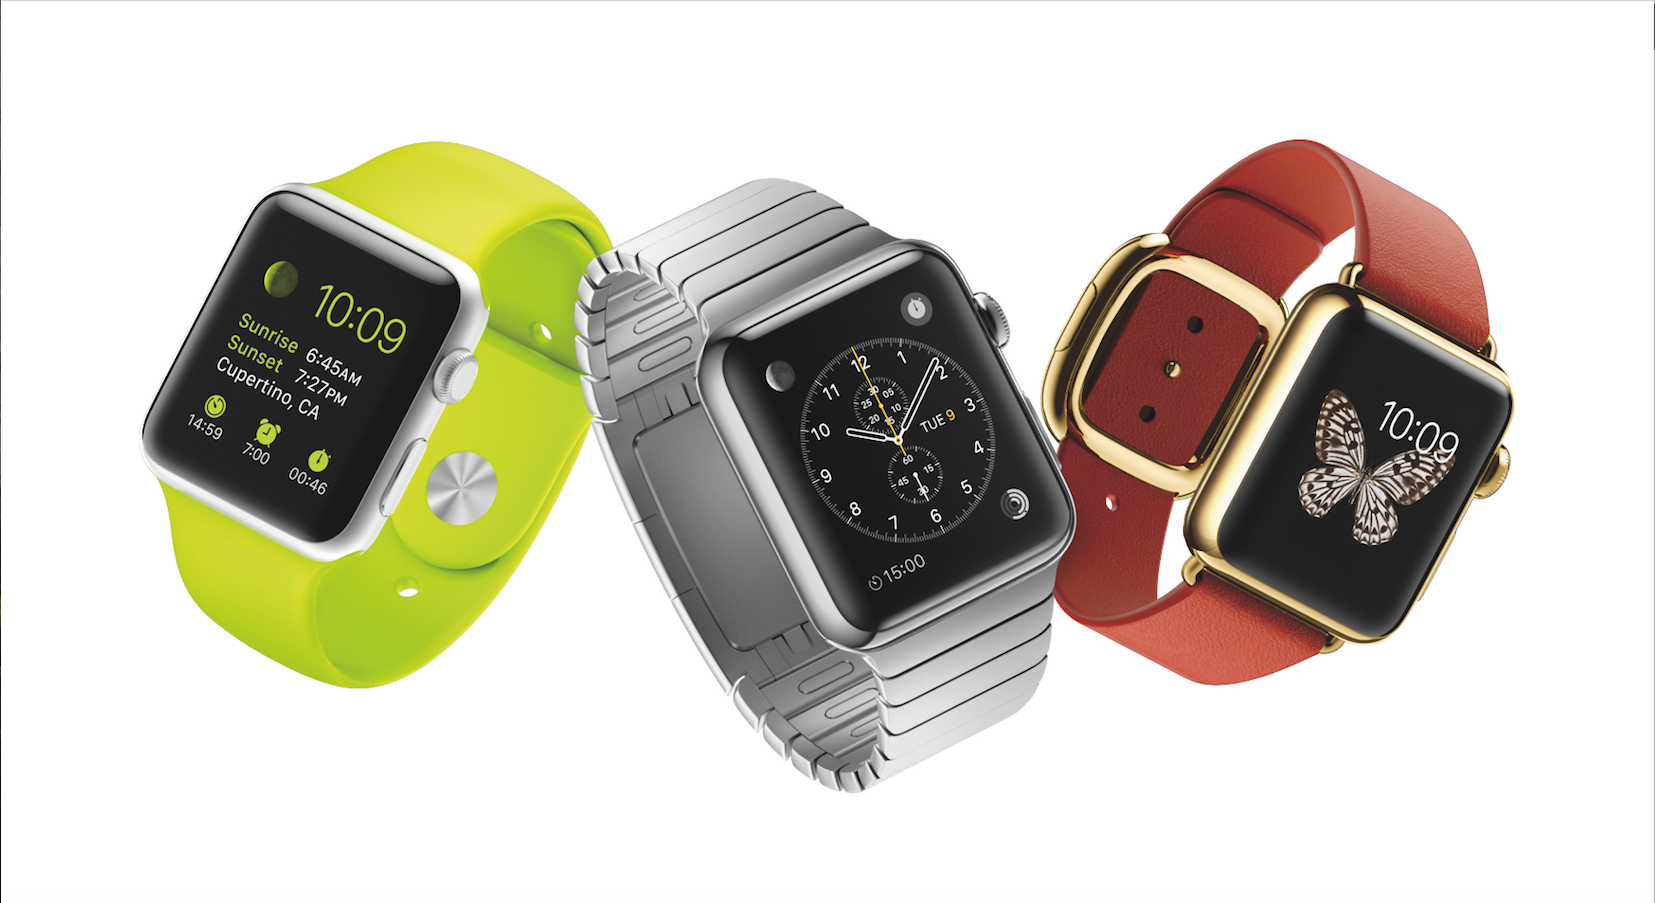 Production on the Apple Watch is set to begin earlier than expected